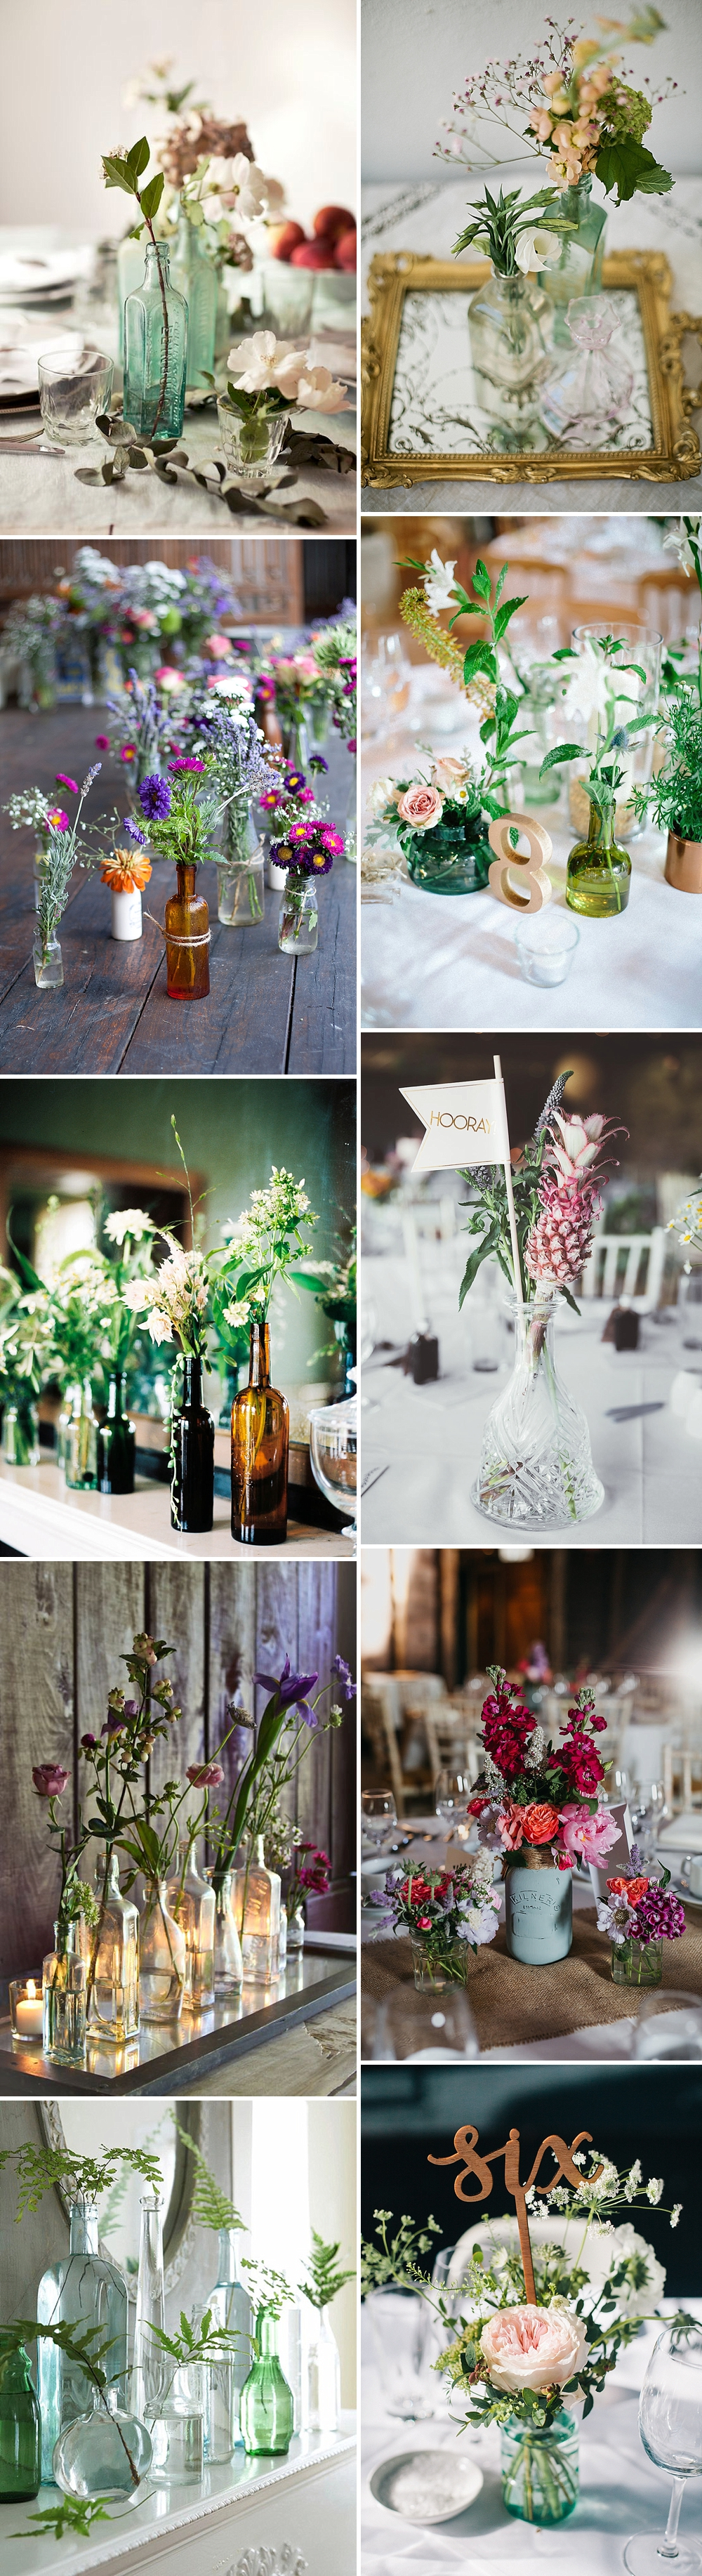 Unique and beautiful table centrepiece ideas for your wedding day for all budgets from classic candelabras to rustic logs and the olive leaf table garland